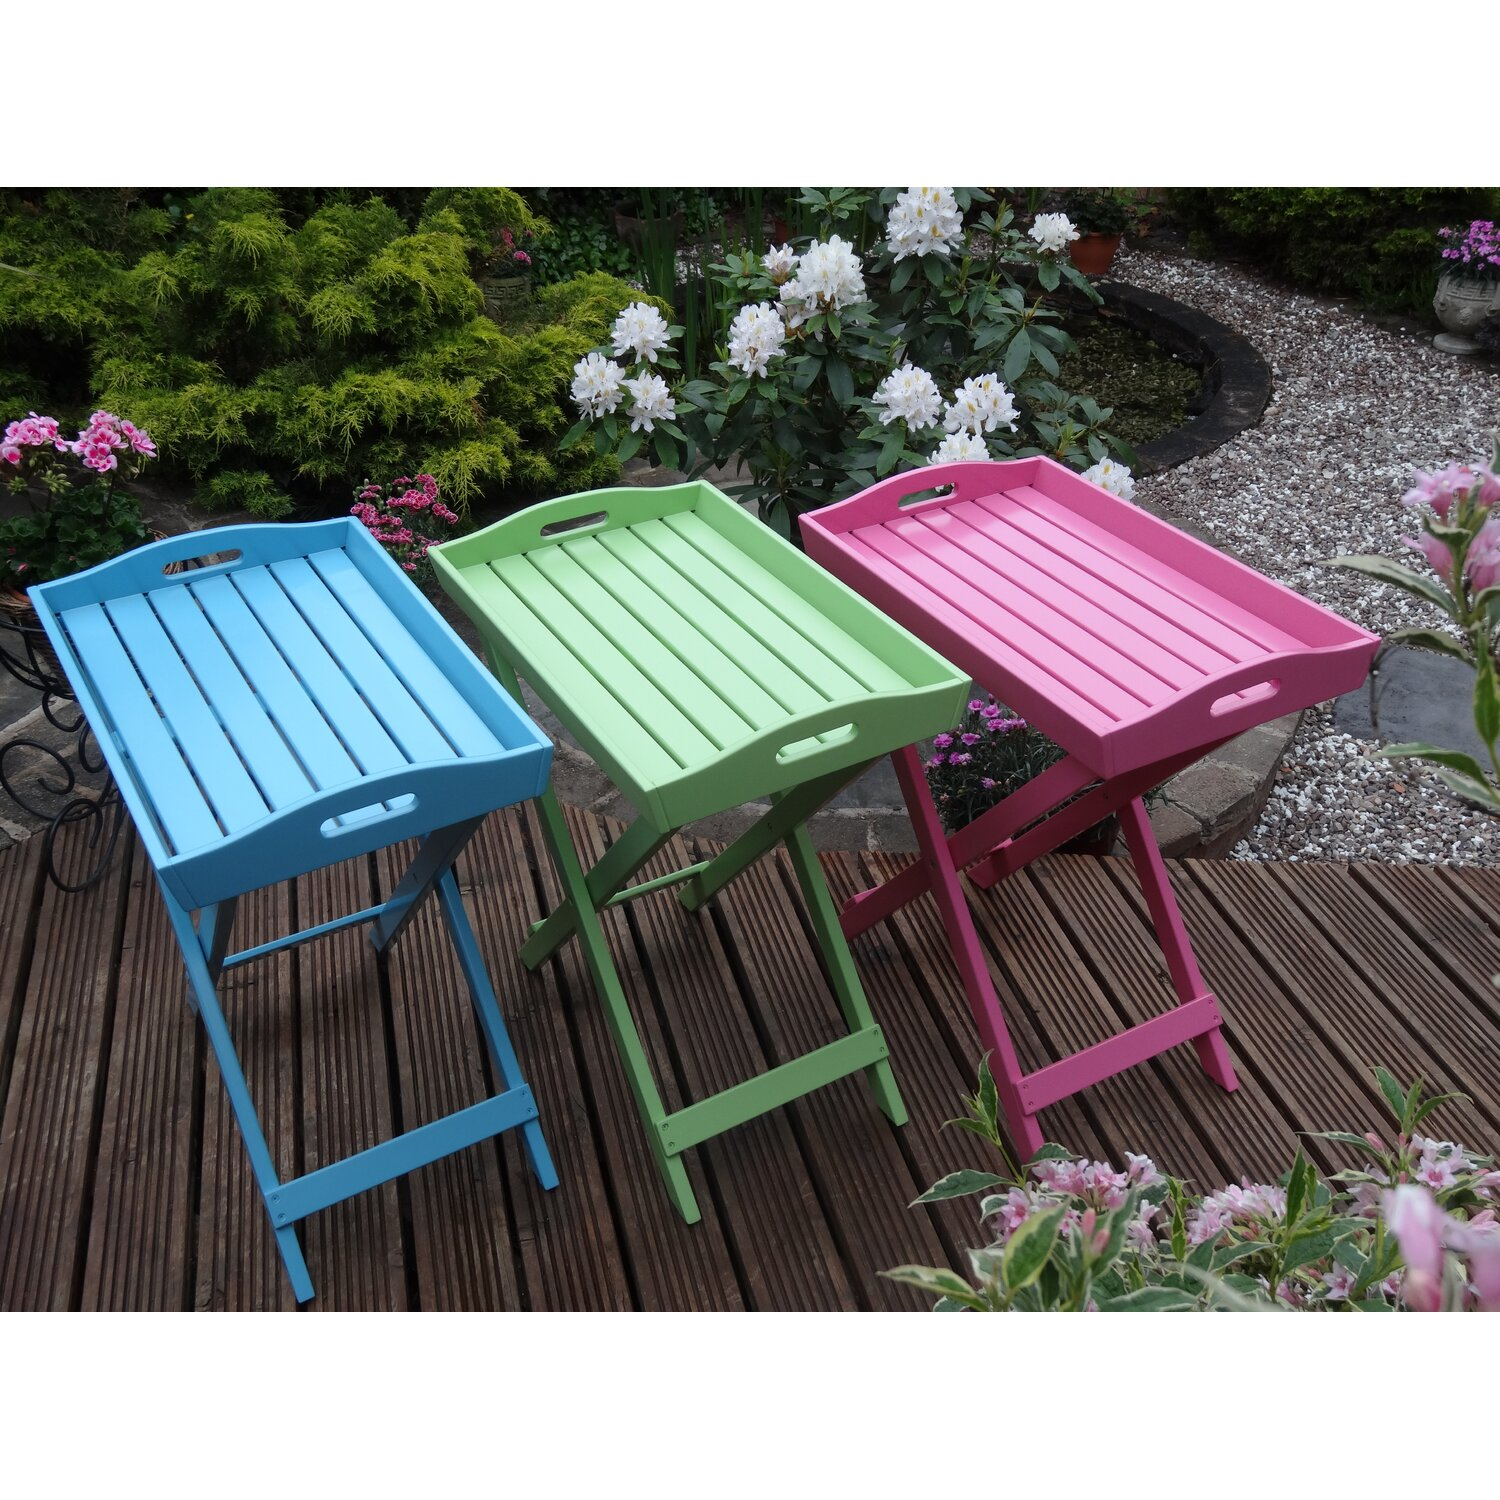 Outdoor Wooden Furniture Plans Free ~ Furniture Category